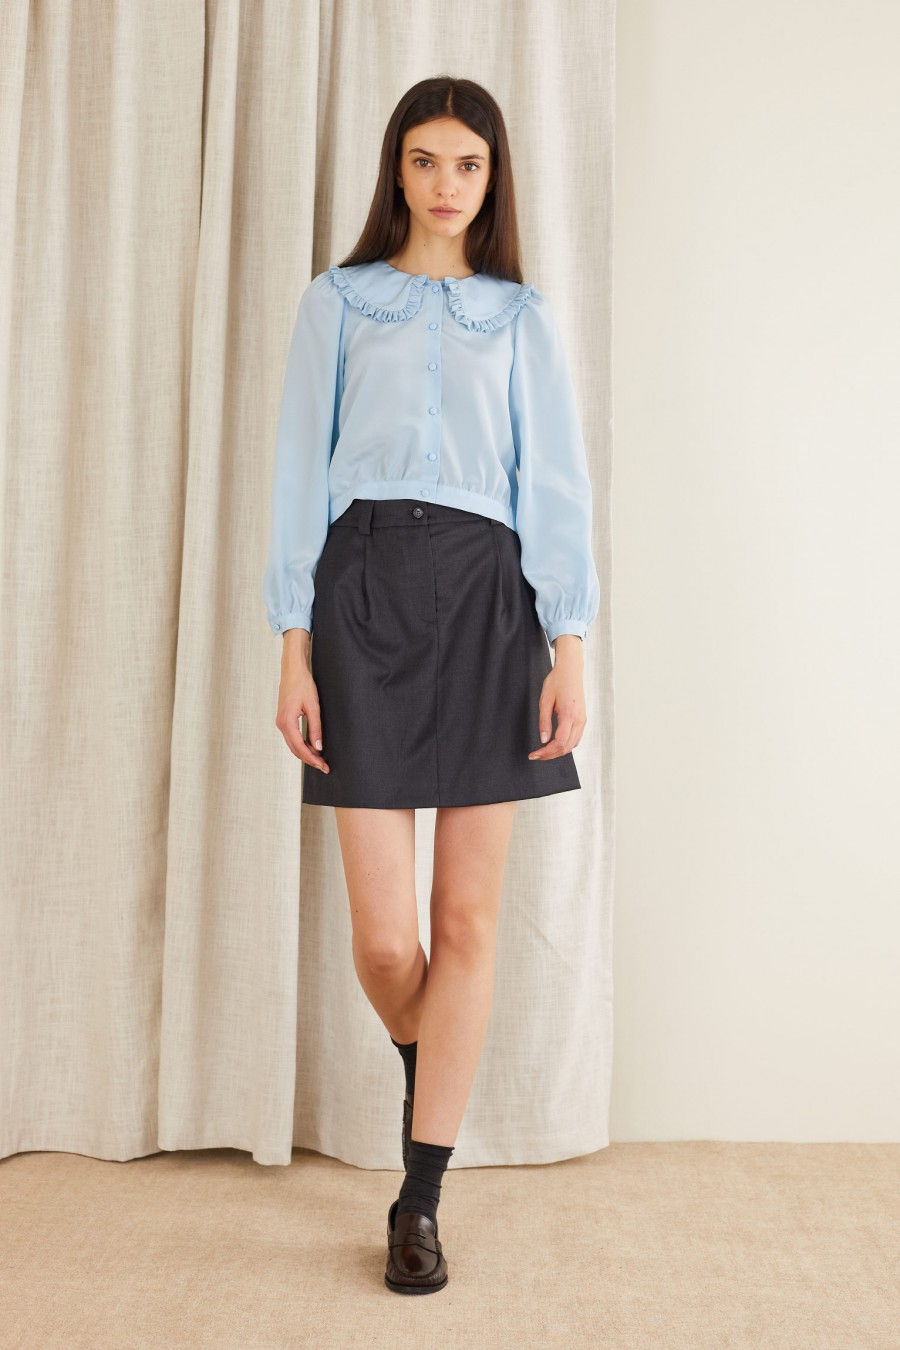 classic style with skirt and shirt